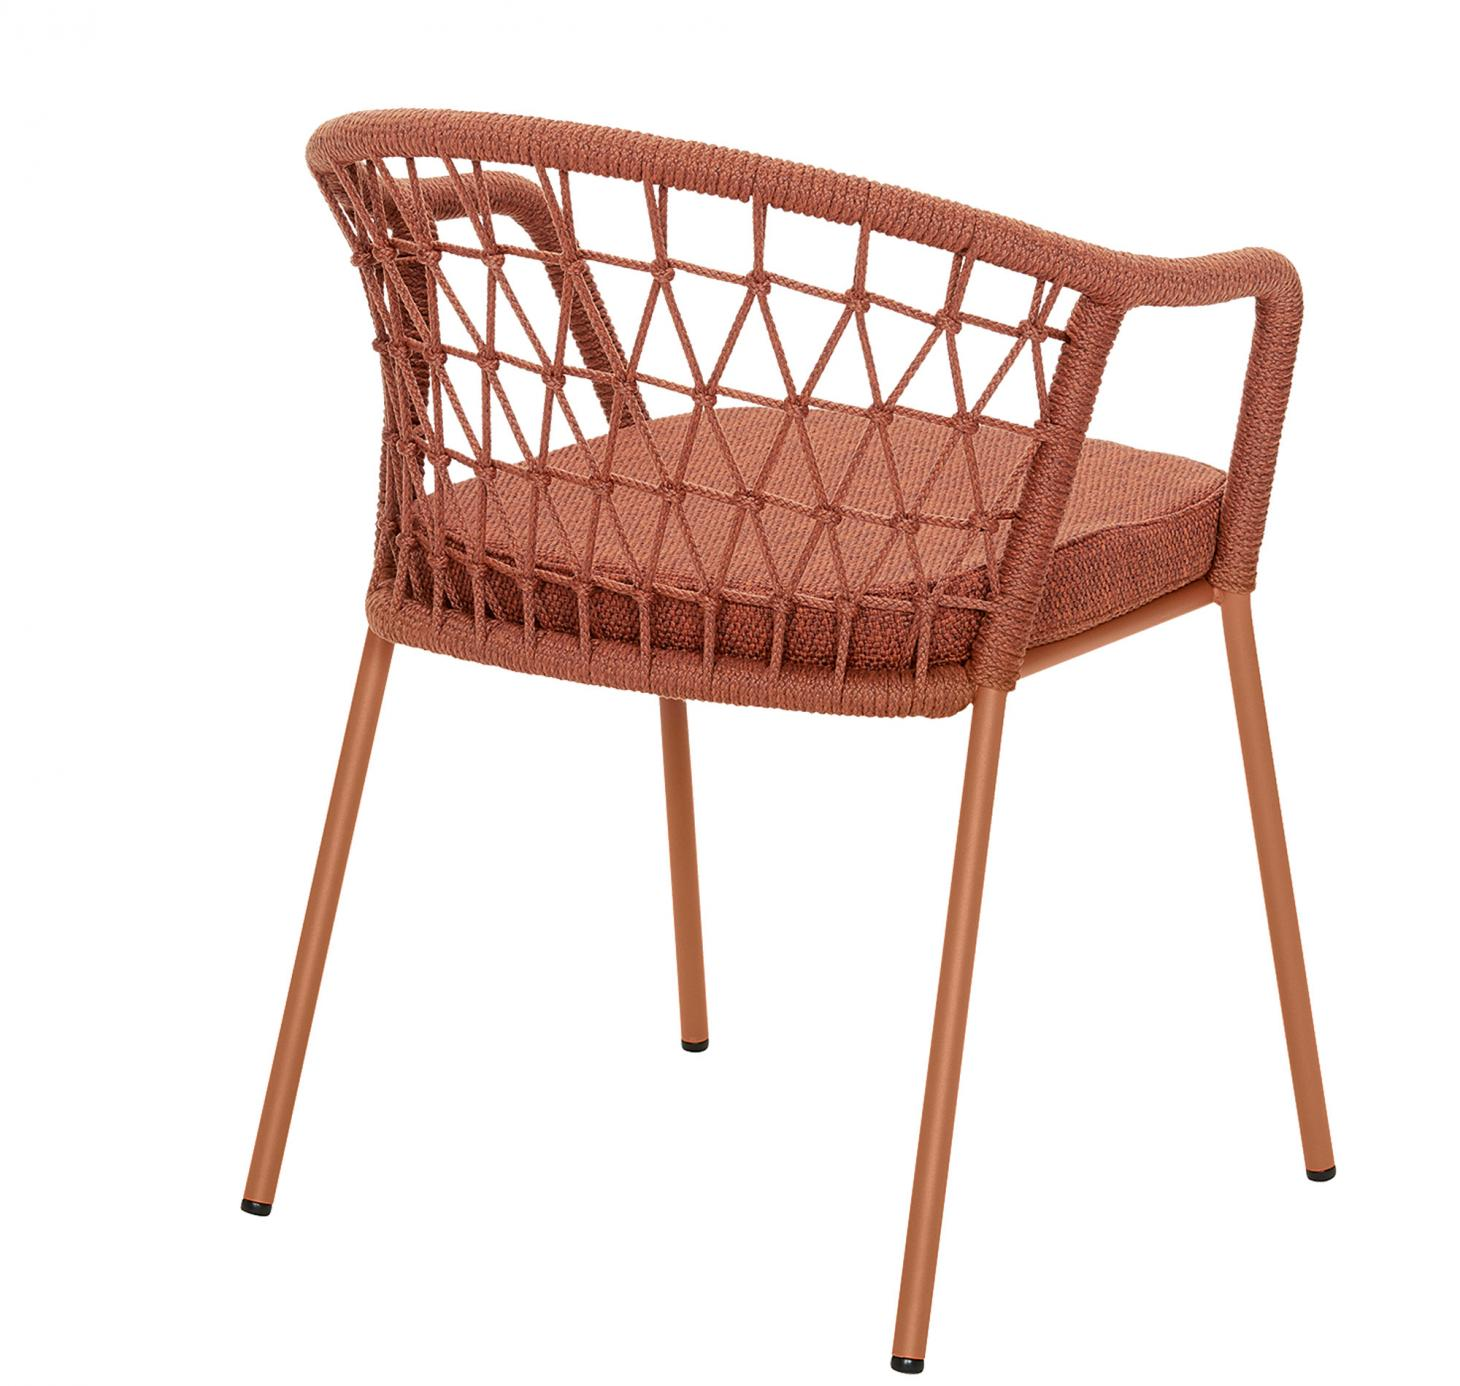 Garden chair covered in red woven cord